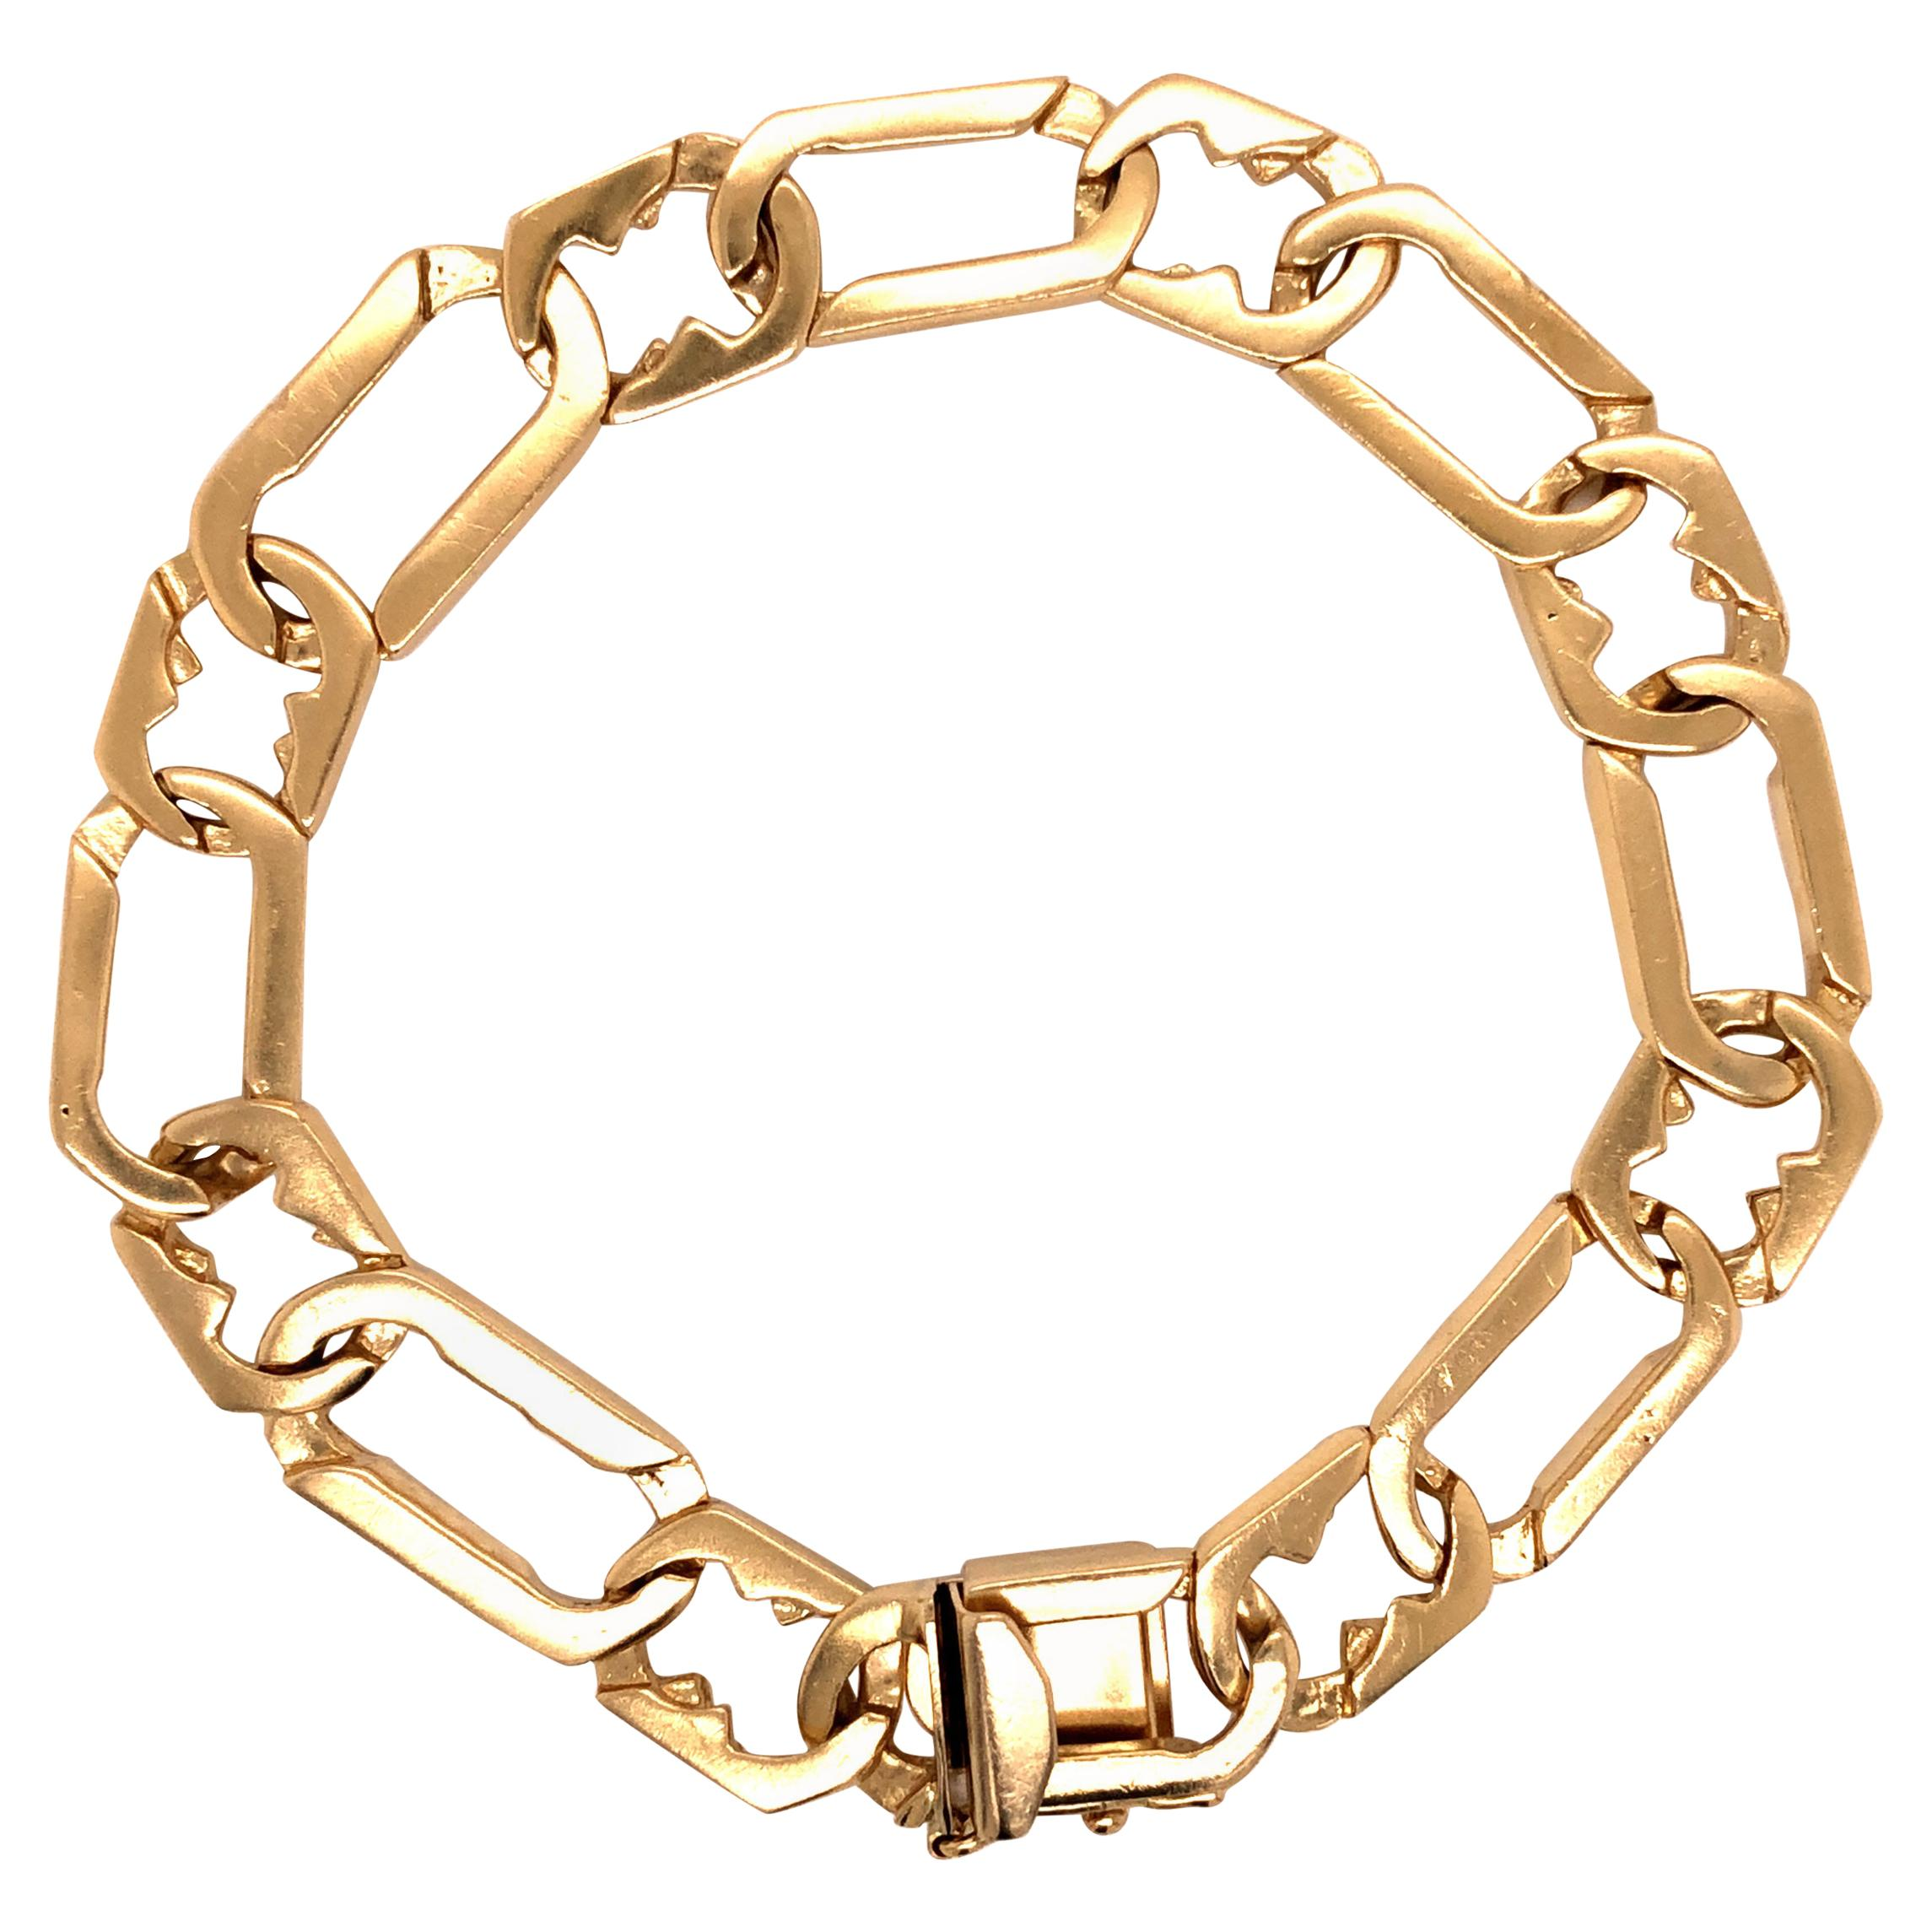 14 Karat Gold Fancy Link Bracelet